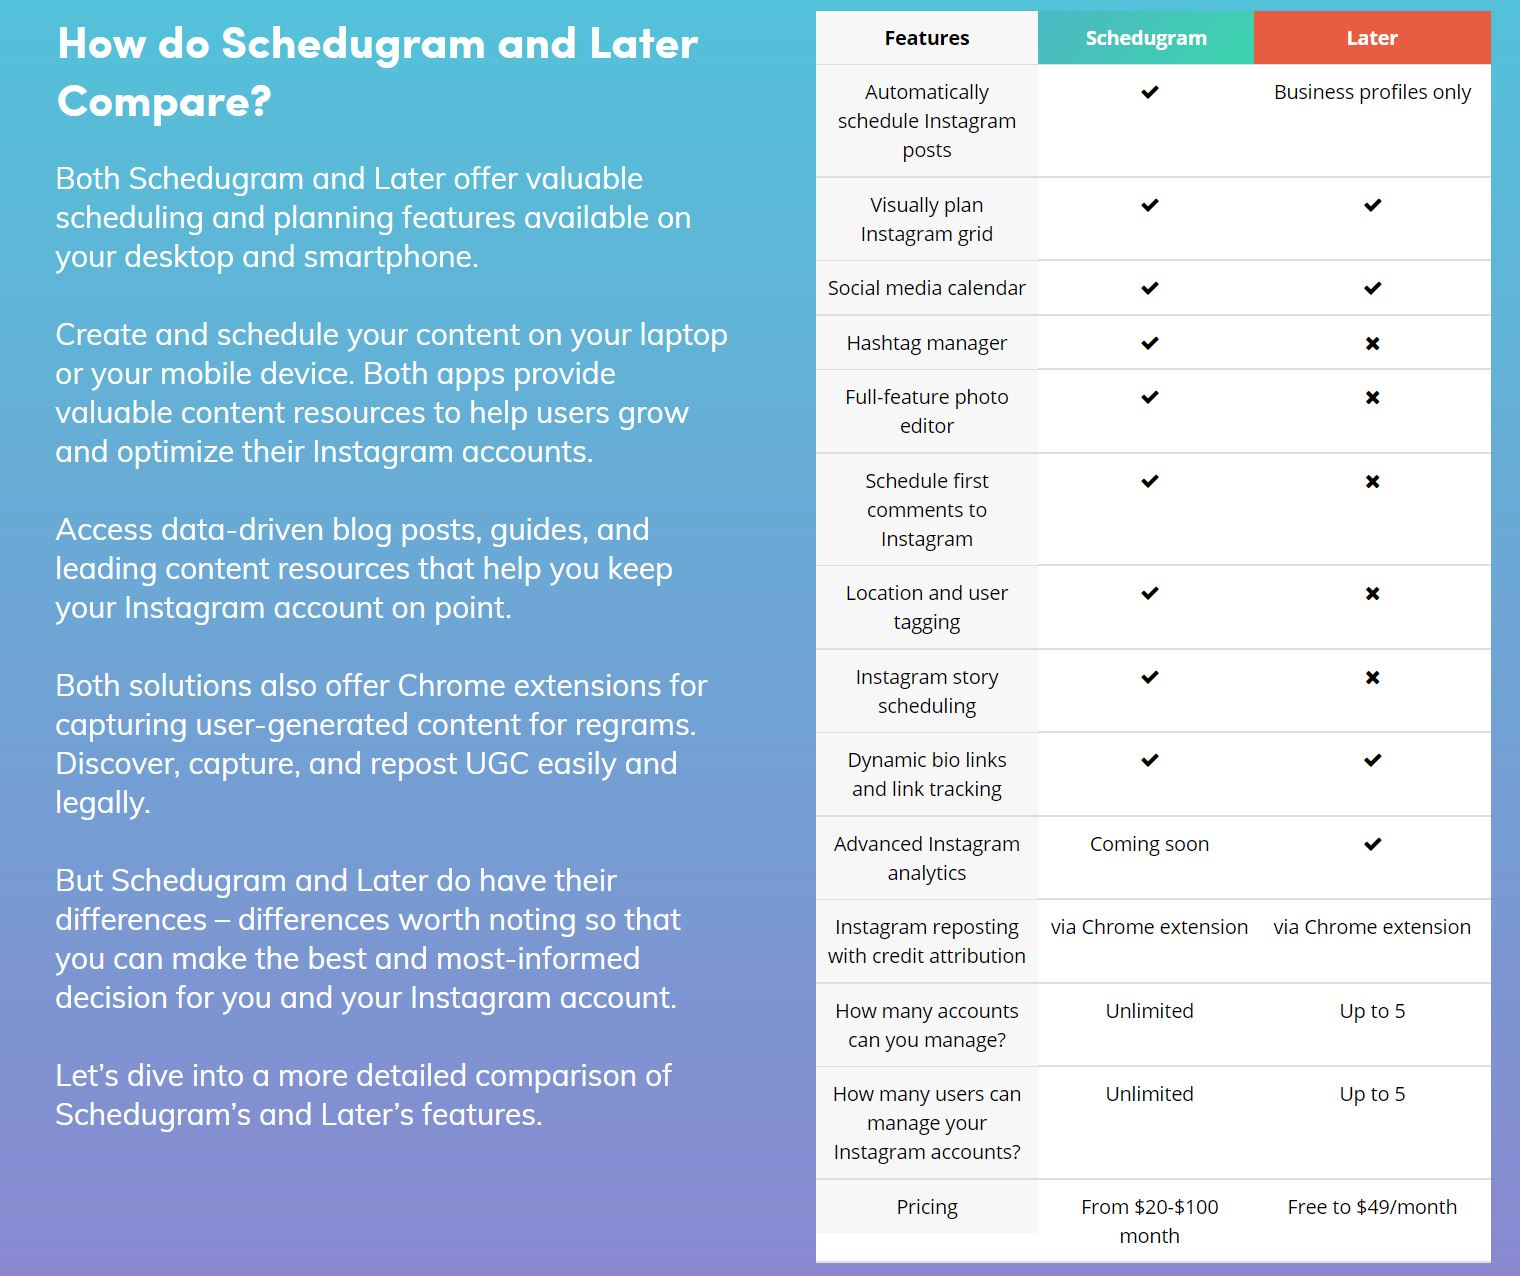 Comparing Schedugram and Later